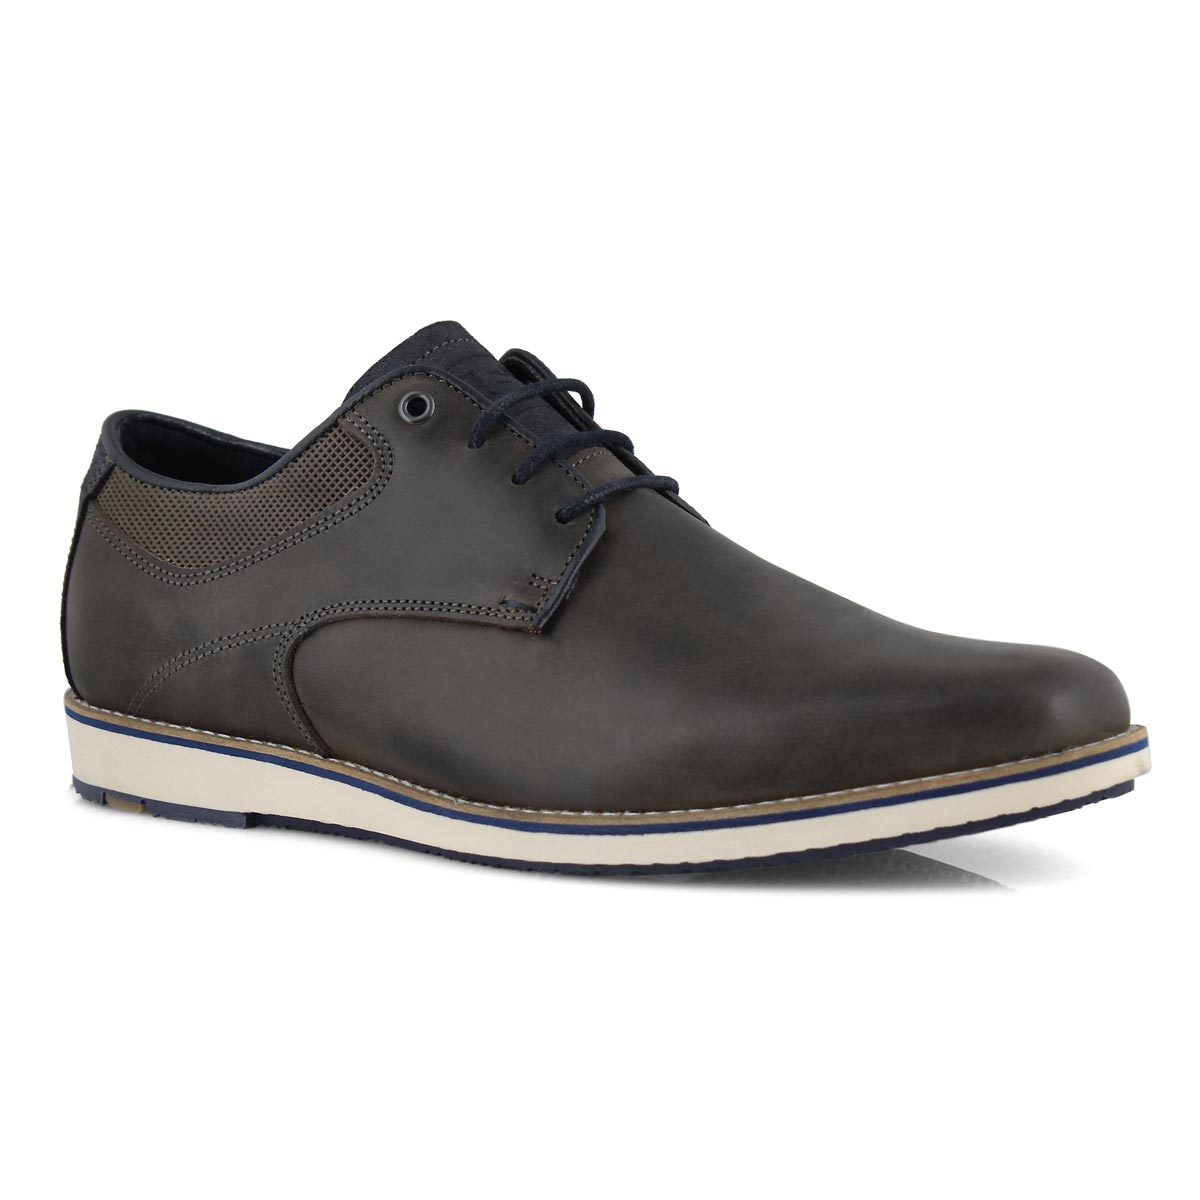 Mns Beckham grey casual oxford